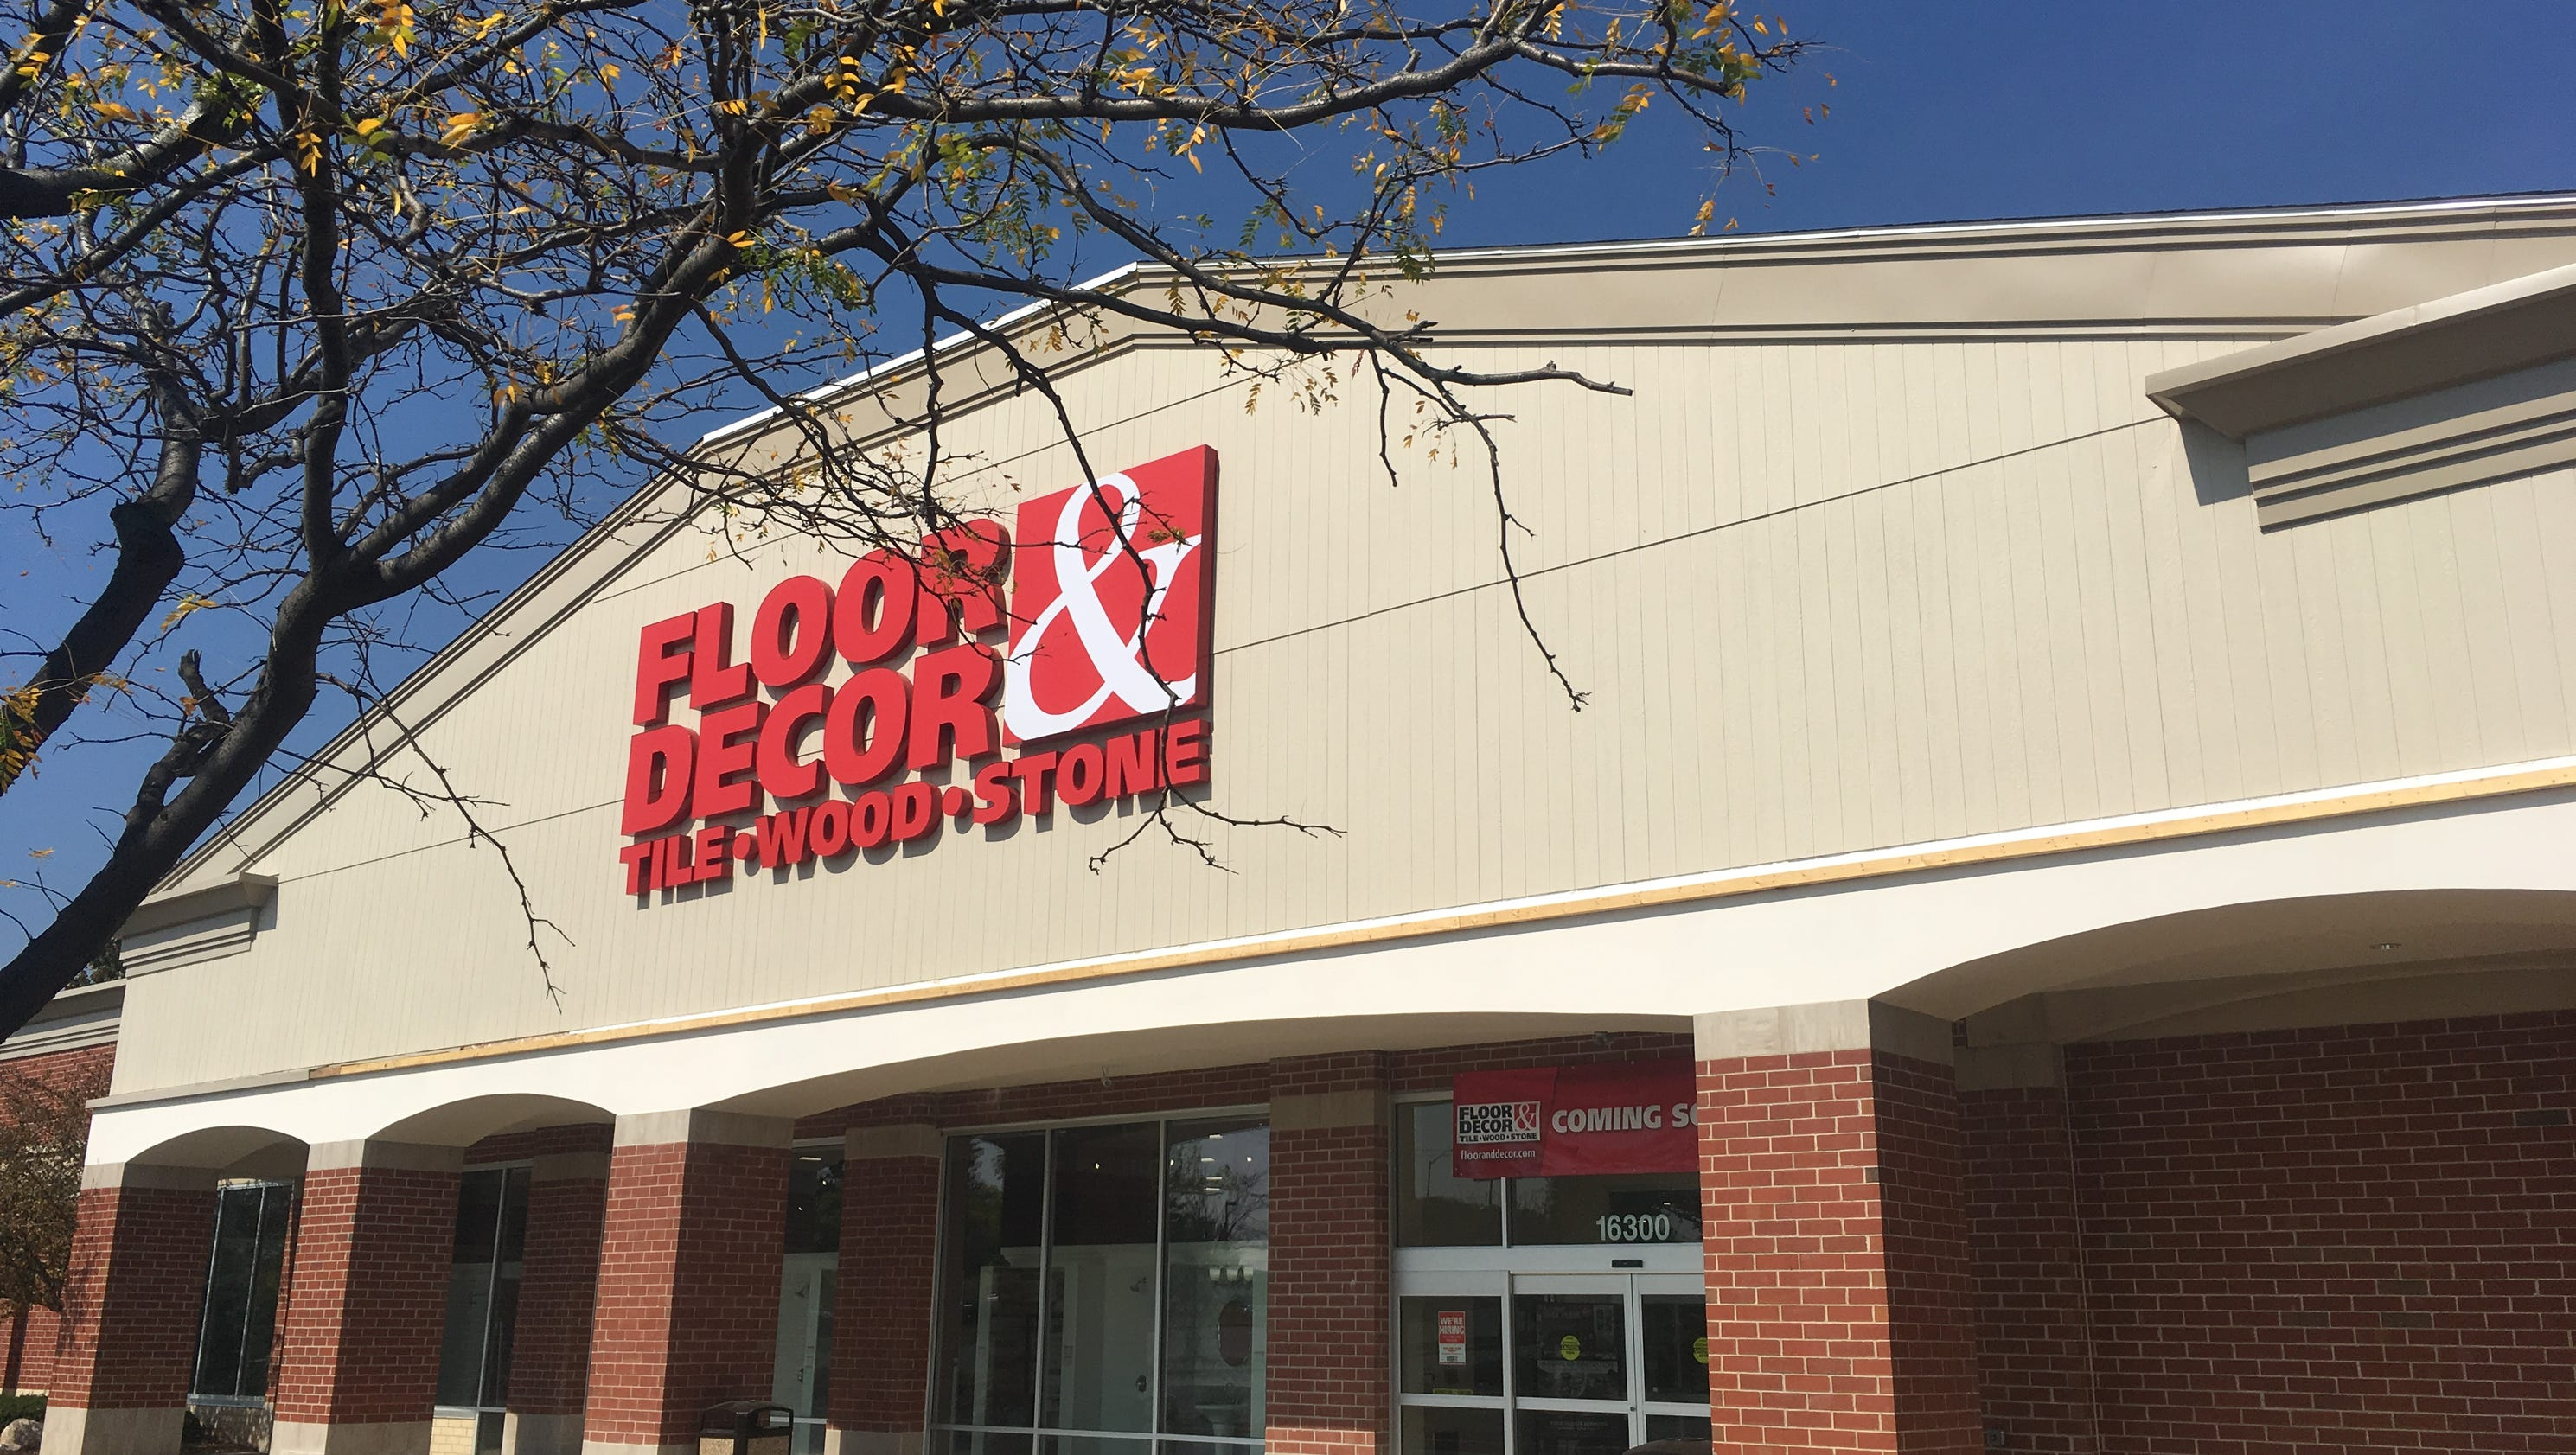 wisconsin s first floor decor store set to open friday in brookfield